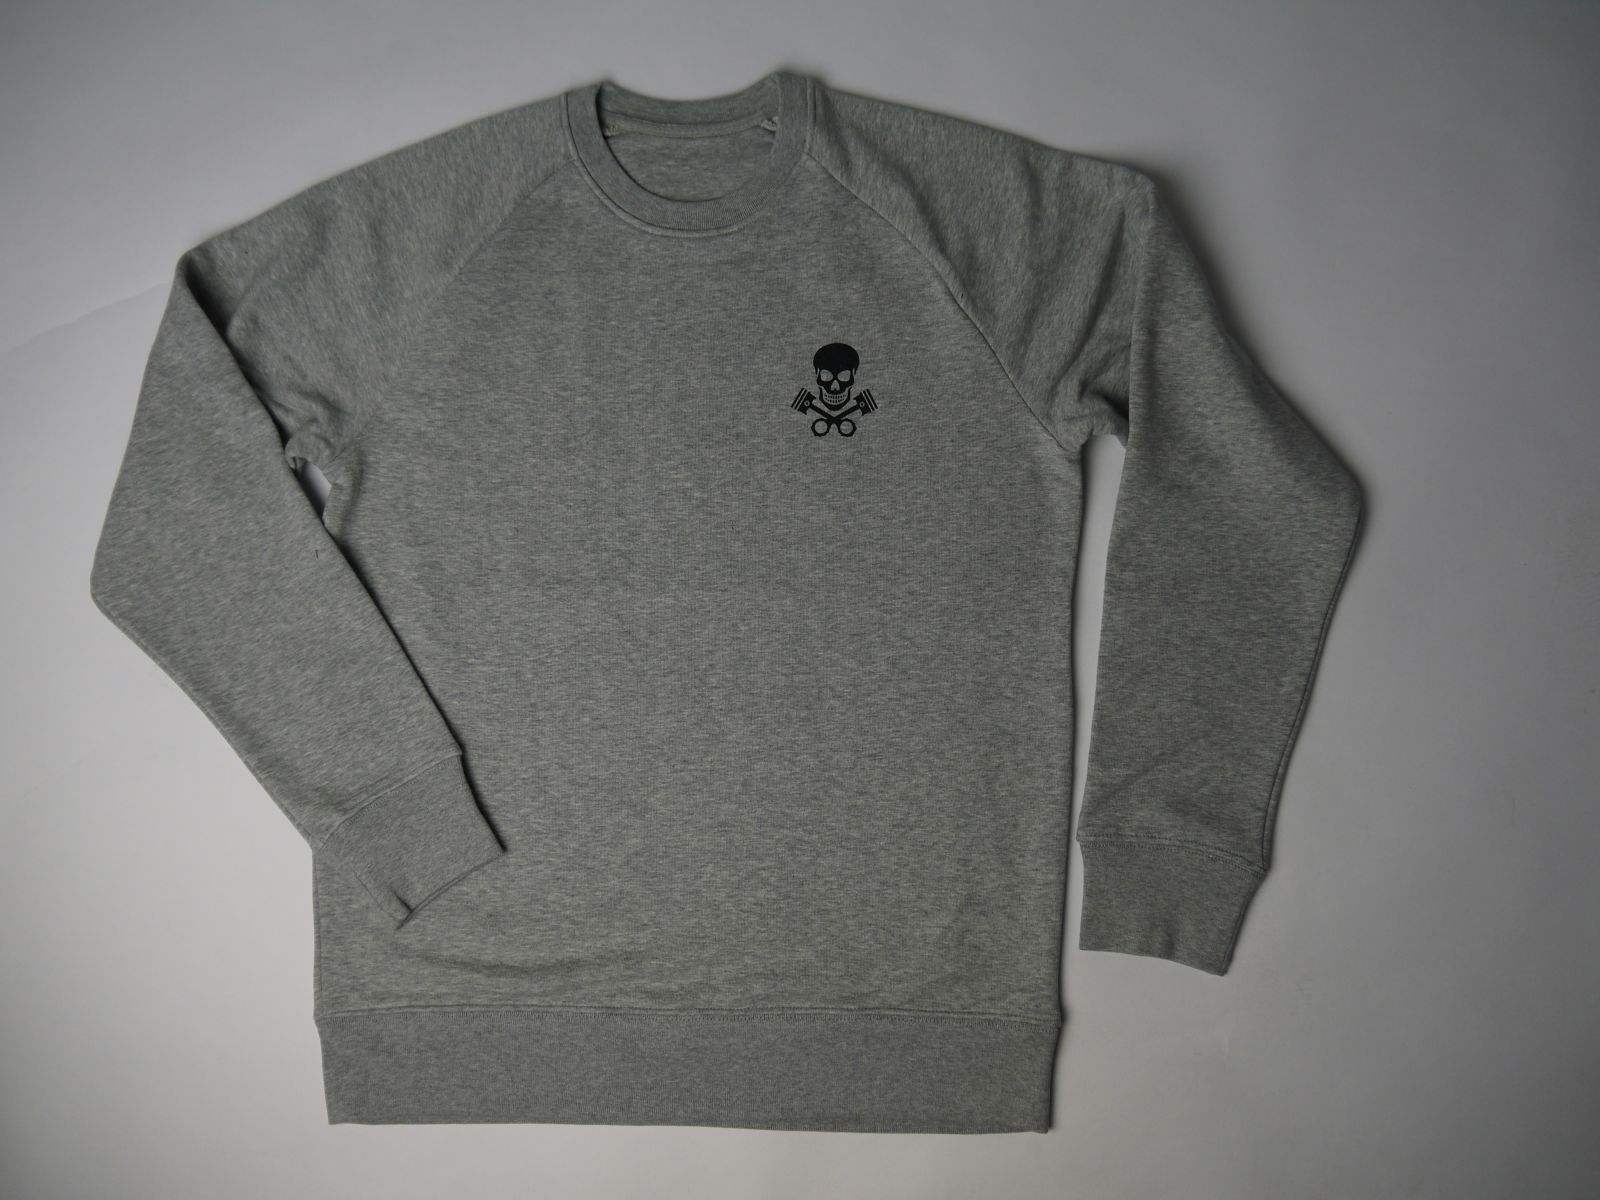 Kings & Queens Skull Logo Grey Melange Sweater - Kings & Queens